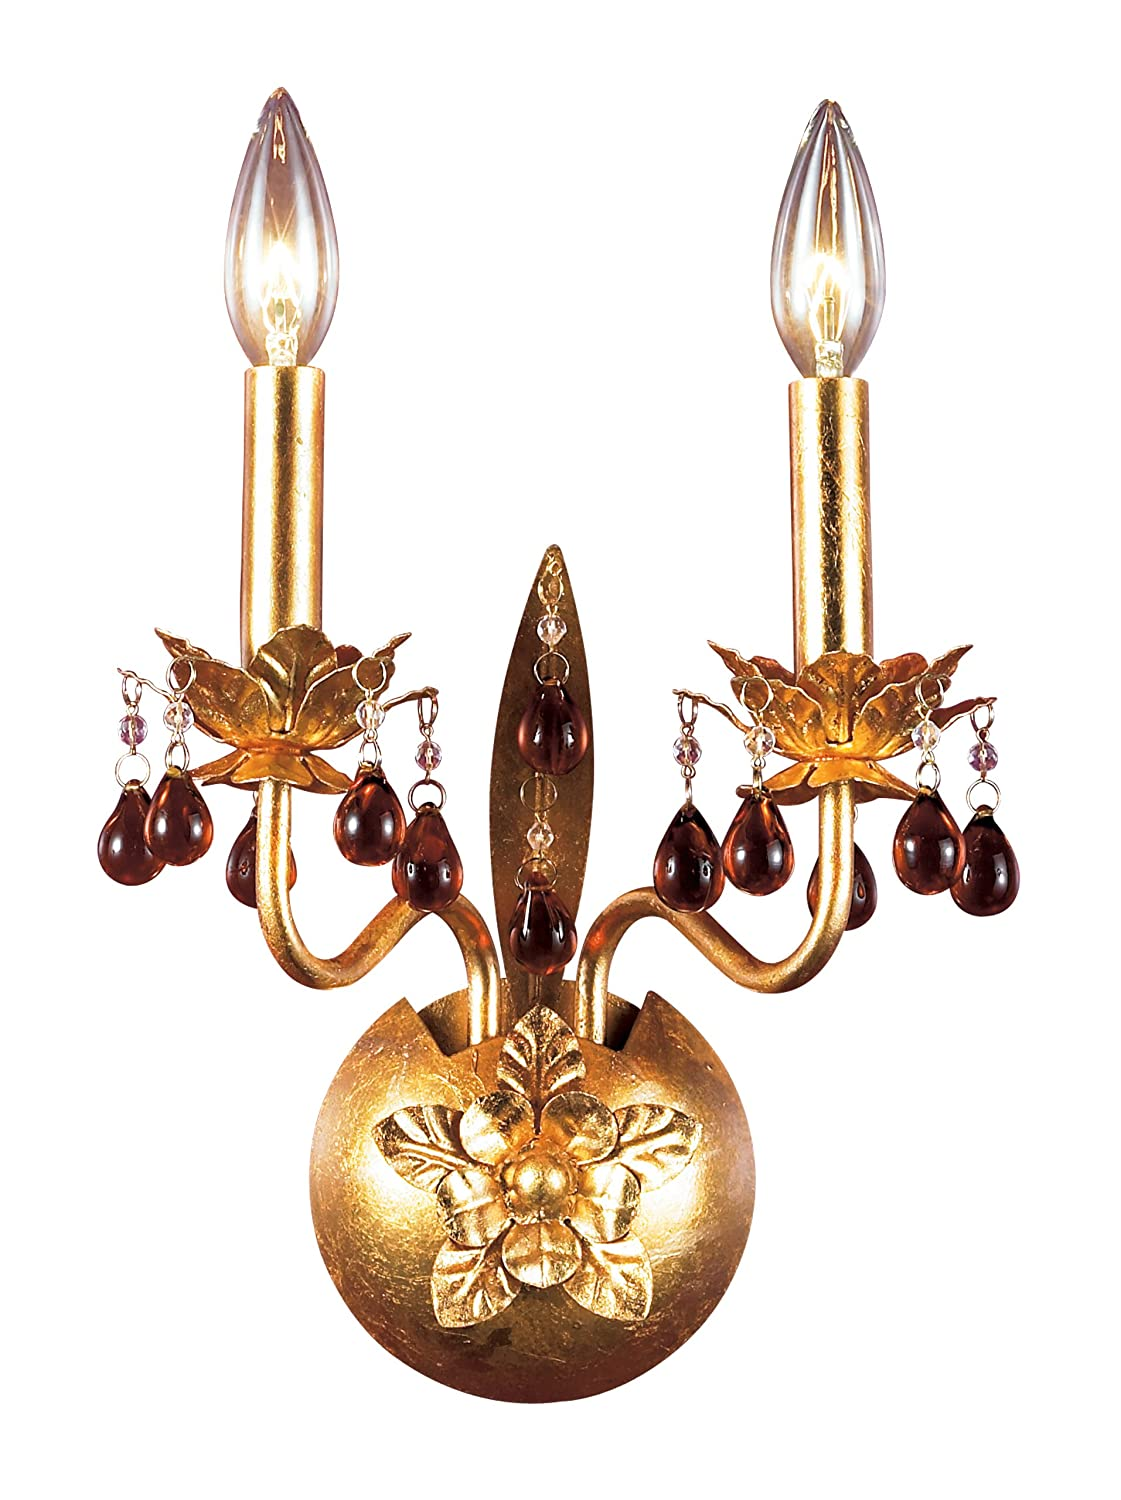 Eurofase 14567-018 Ambroise 2-Light Wall Sconce Gold